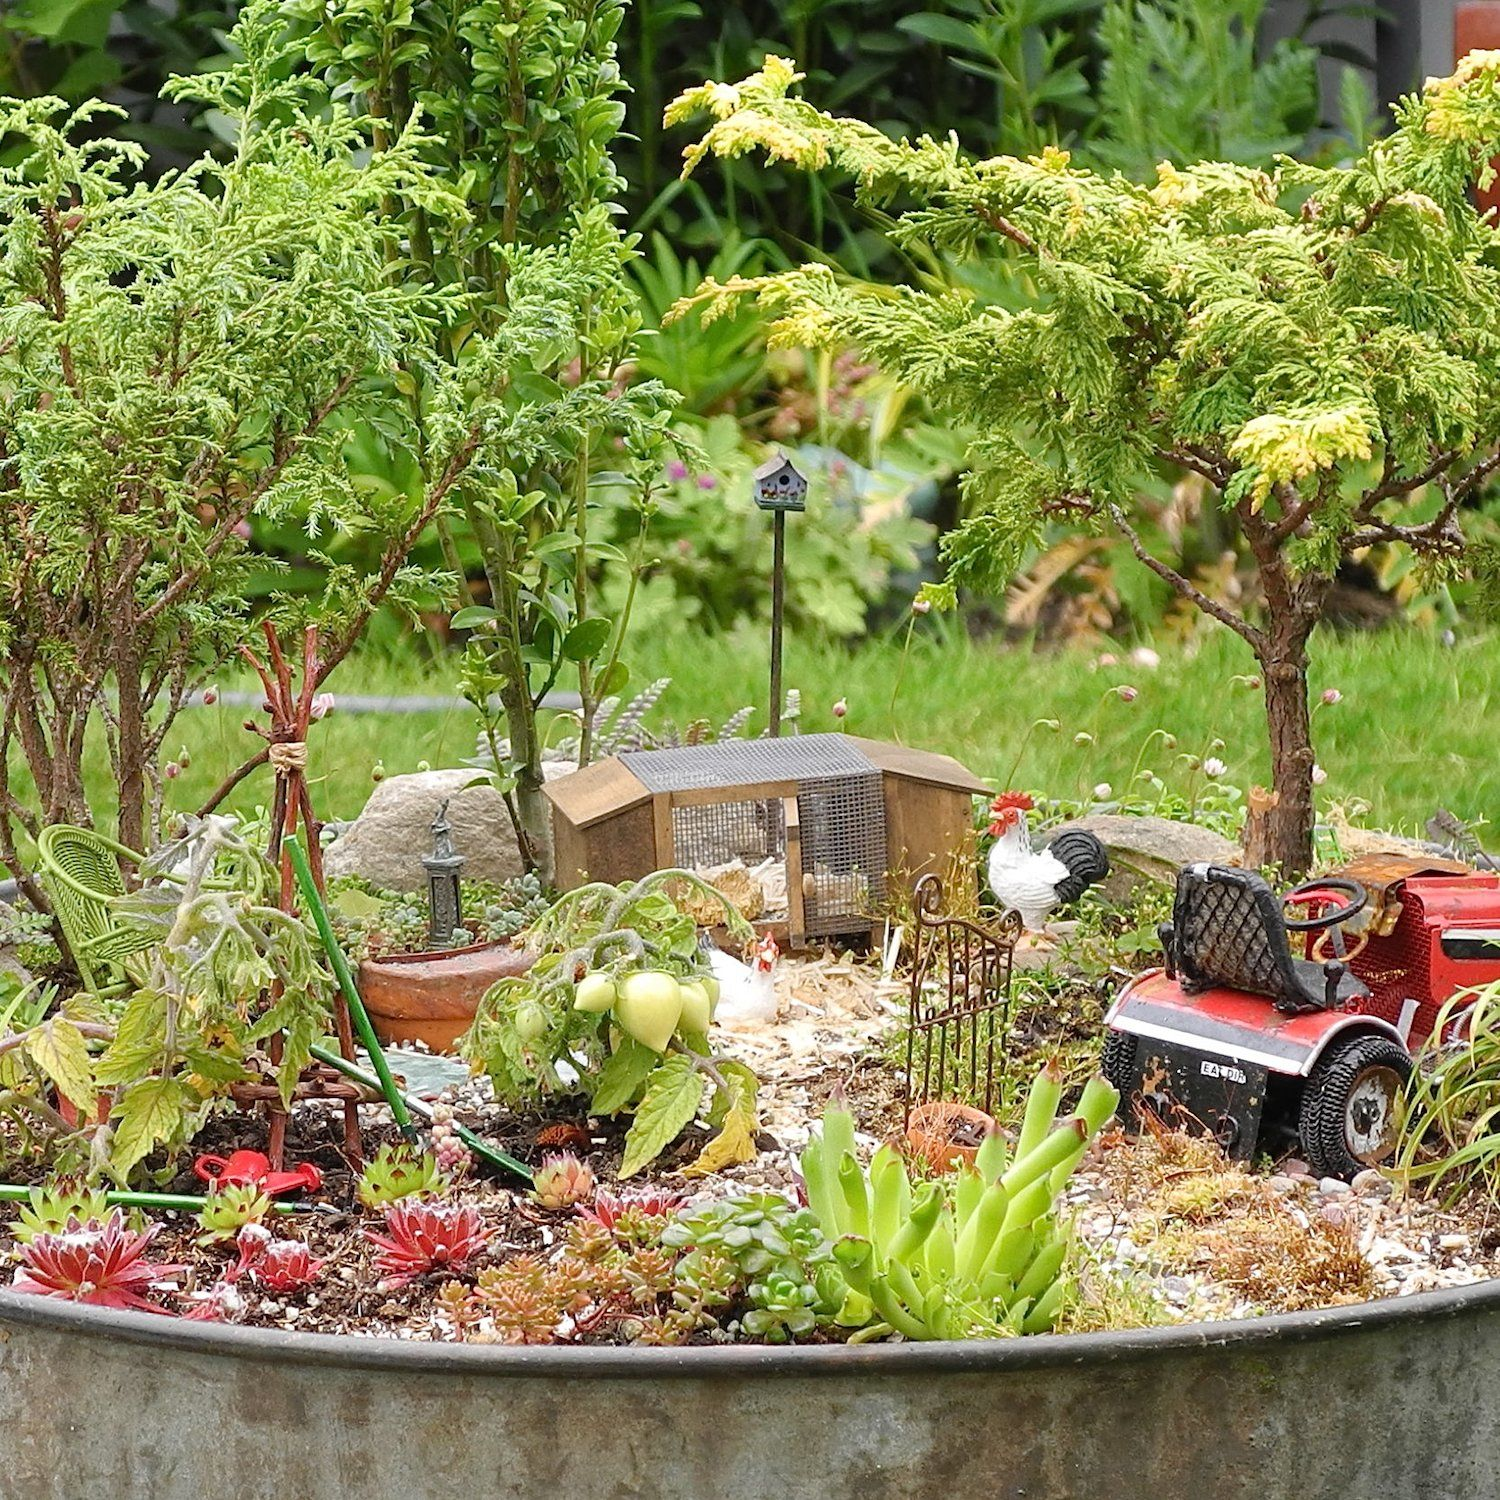 Photos For Best Rate Landscape Design: Gardening In Miniature Book, The Primer For The Hobby